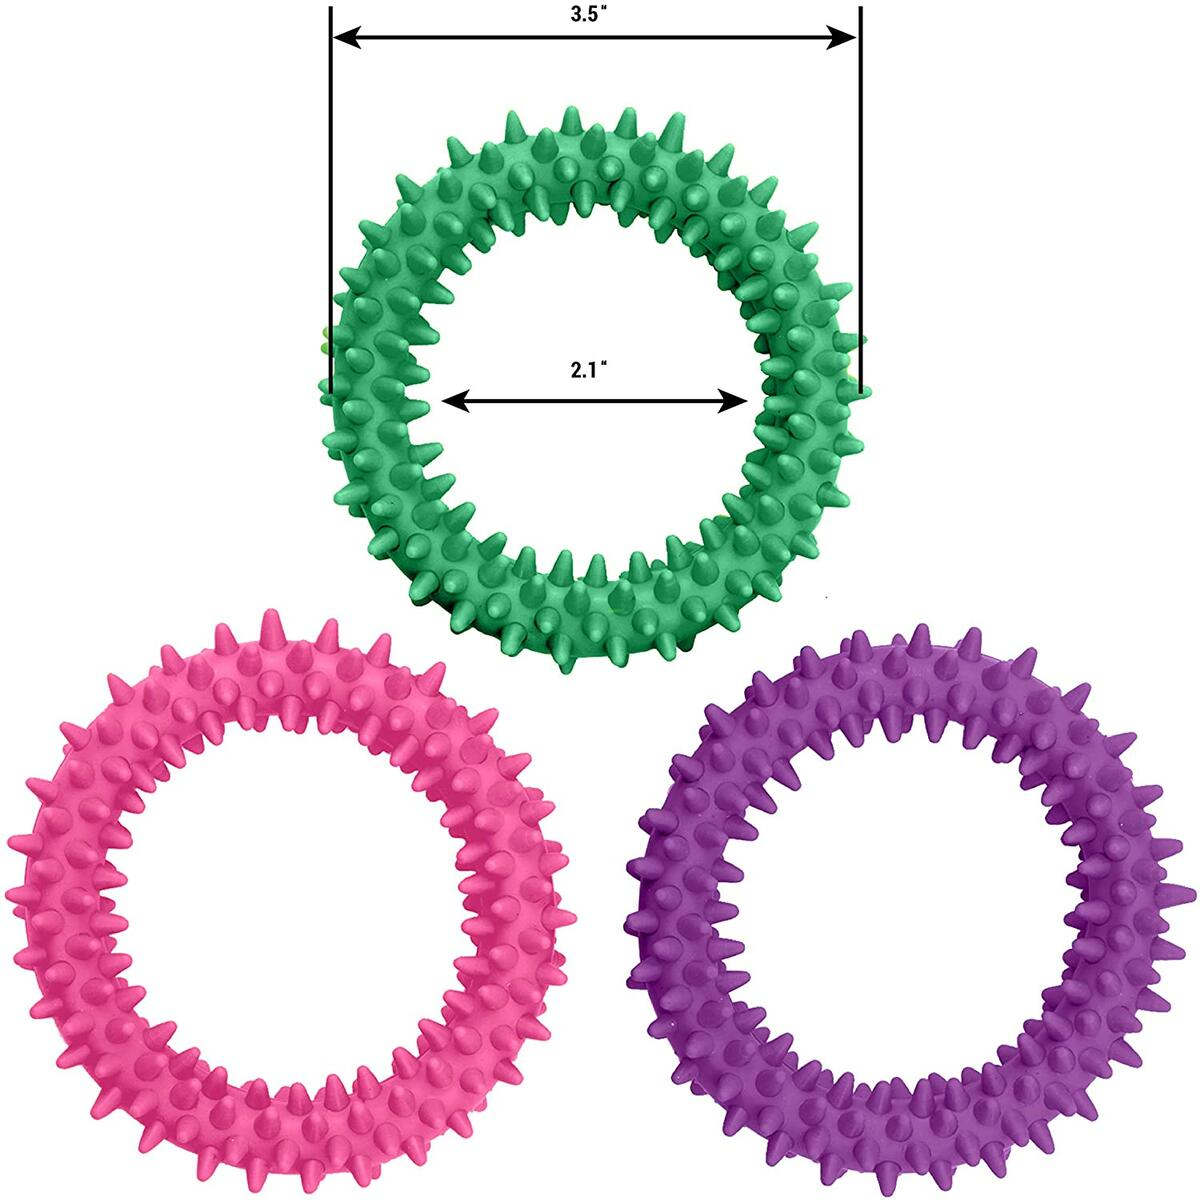 Sensory Ring and Fidget Toy 3 Pack Pink Purple Green | Soft, Flexible Ring and Rubber Spikes | Helps Reduce Stress and Anxiety| Promotes Focus and Clarity | Children, Youth, Adults Sensory Toys